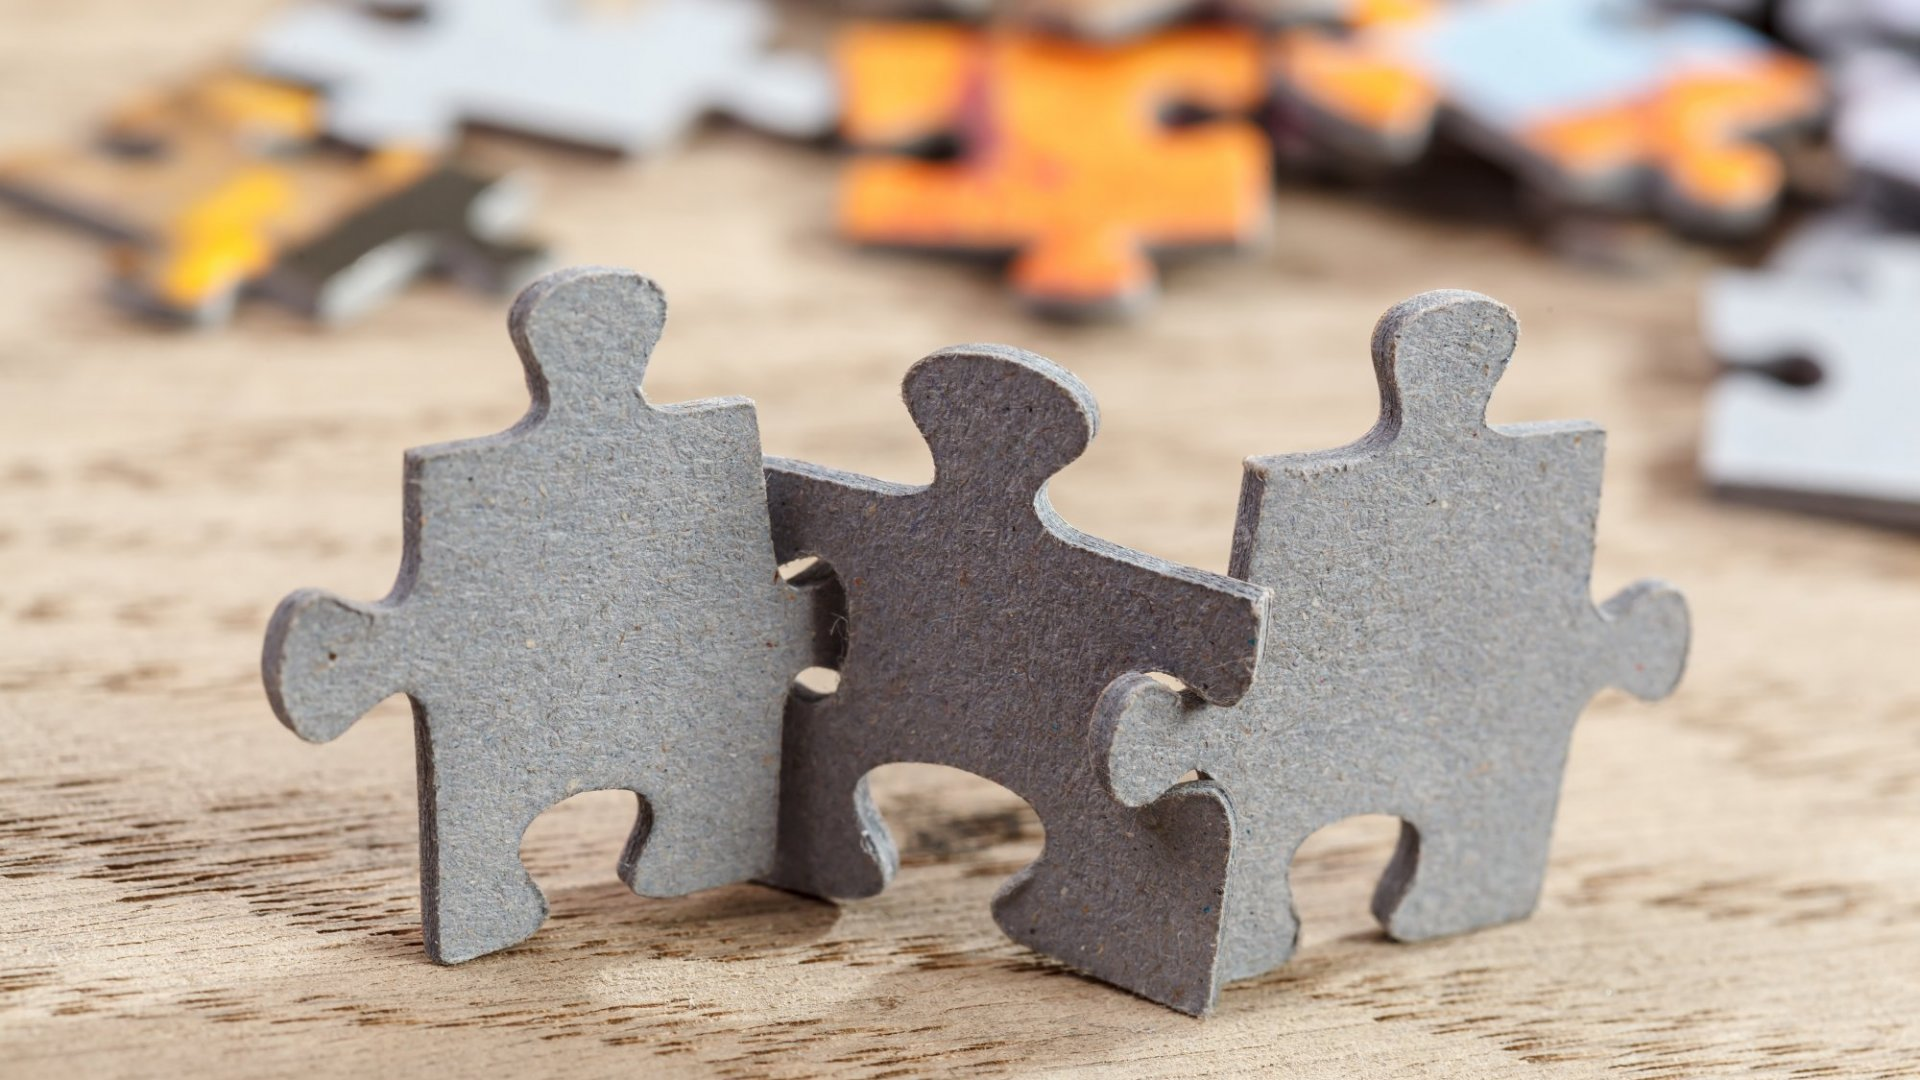 How to Grow Your Business Through Strong Partnerships